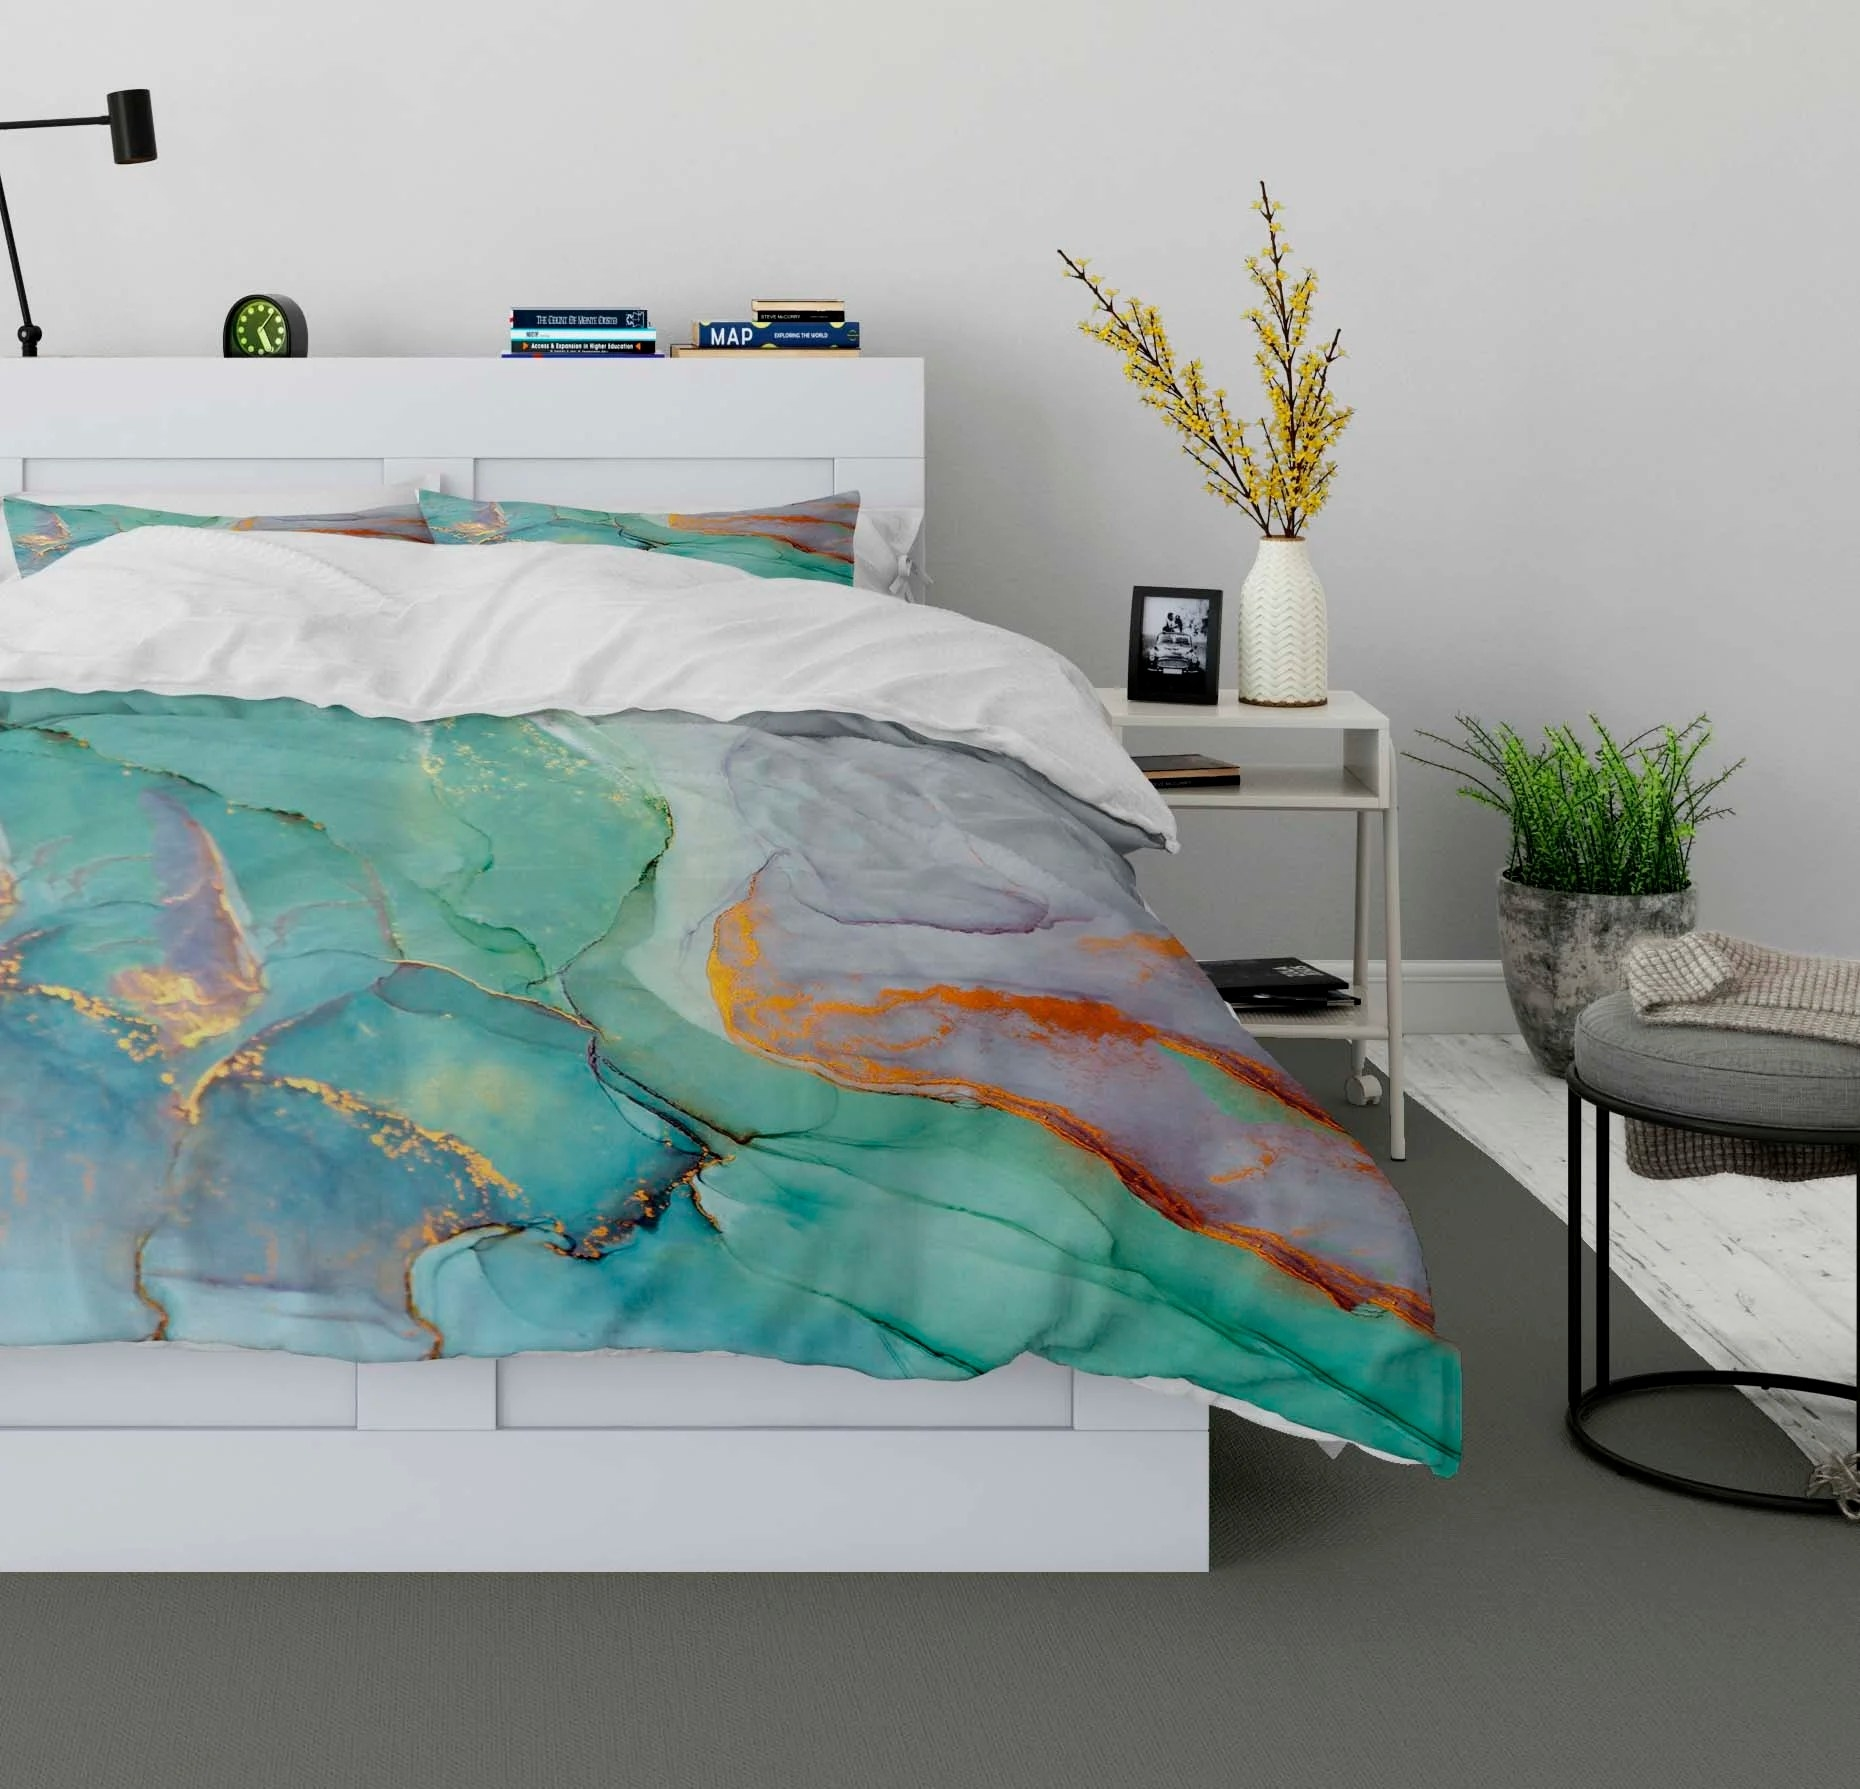 The blue and green duvet with a watercolor-like pattern on a queen bed